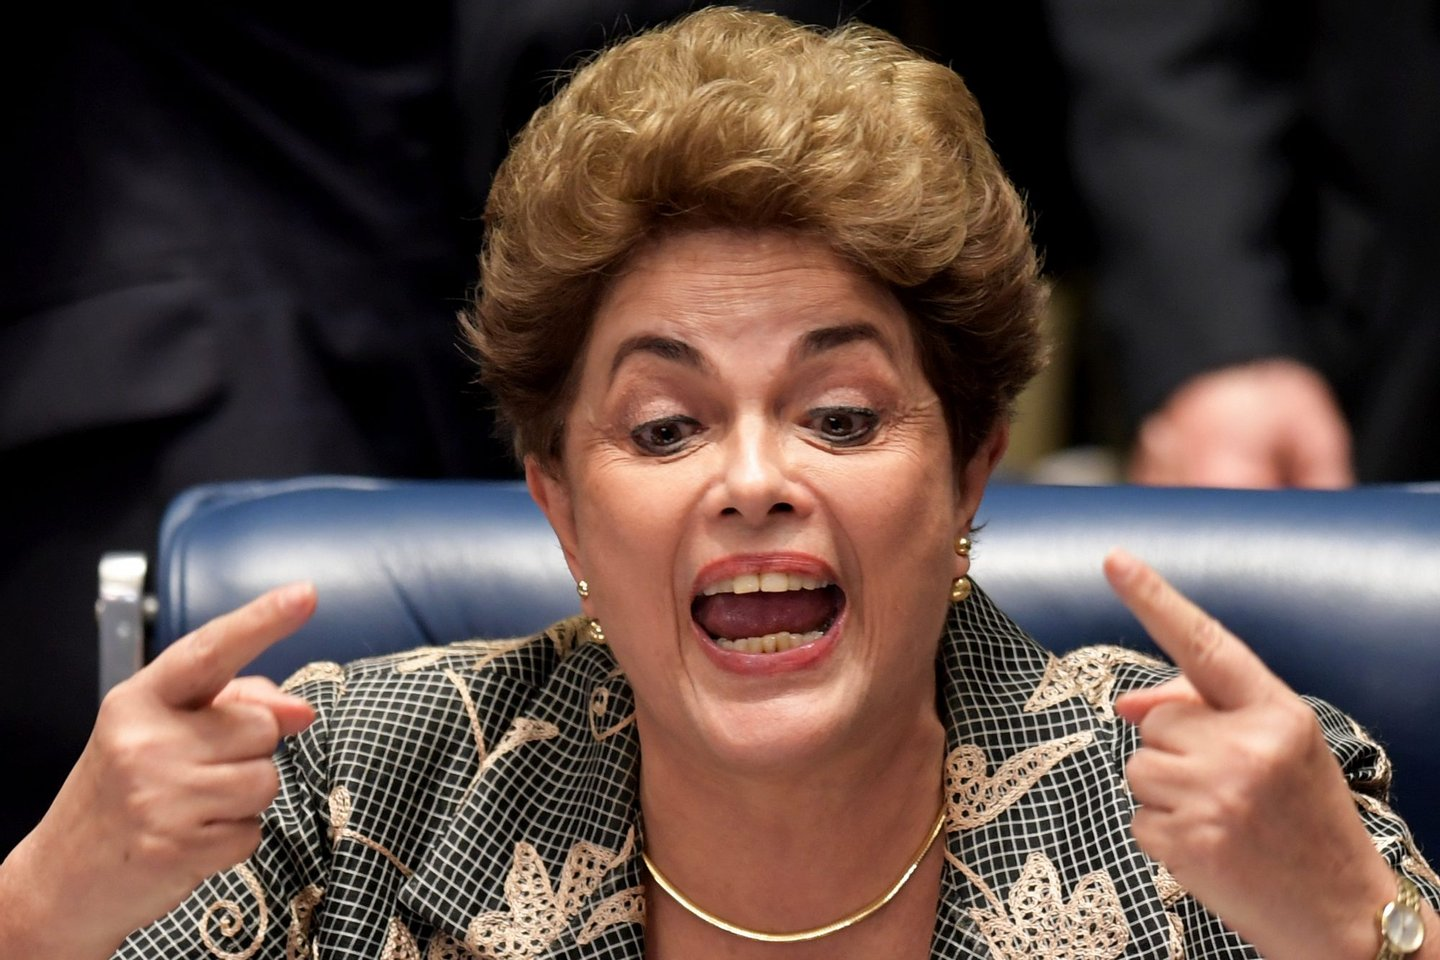 "Suspended Brazilian President Dilma Rousseff gestures during her testimony in her impeachment trial at the National Congress in Brasilia on August 29, 2016. Rousseff told senators in emotional, combative testimony at her trial Monday that voting for her impeachment would amount to a ""coup d'etat."" / AFP / EVARISTO SA (Photo credit should read EVARISTO SA/AFP/Getty Images)"